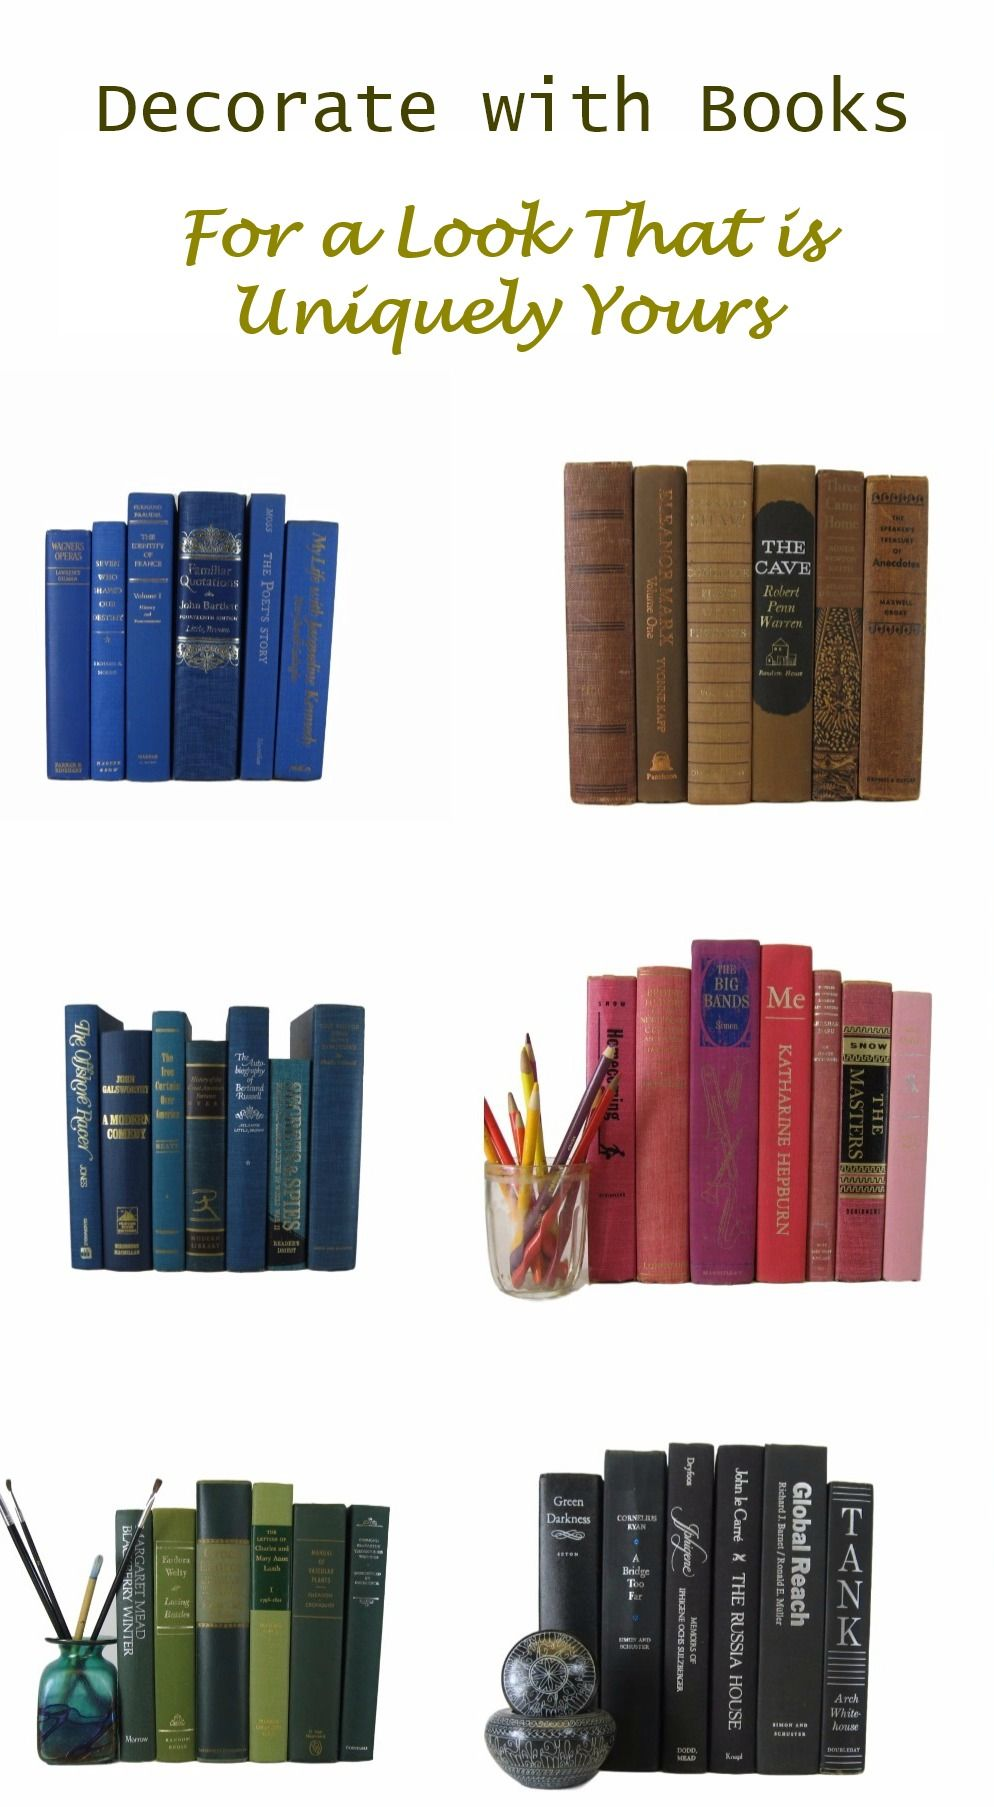 Decorative book sets create a home decor style that is uniquely